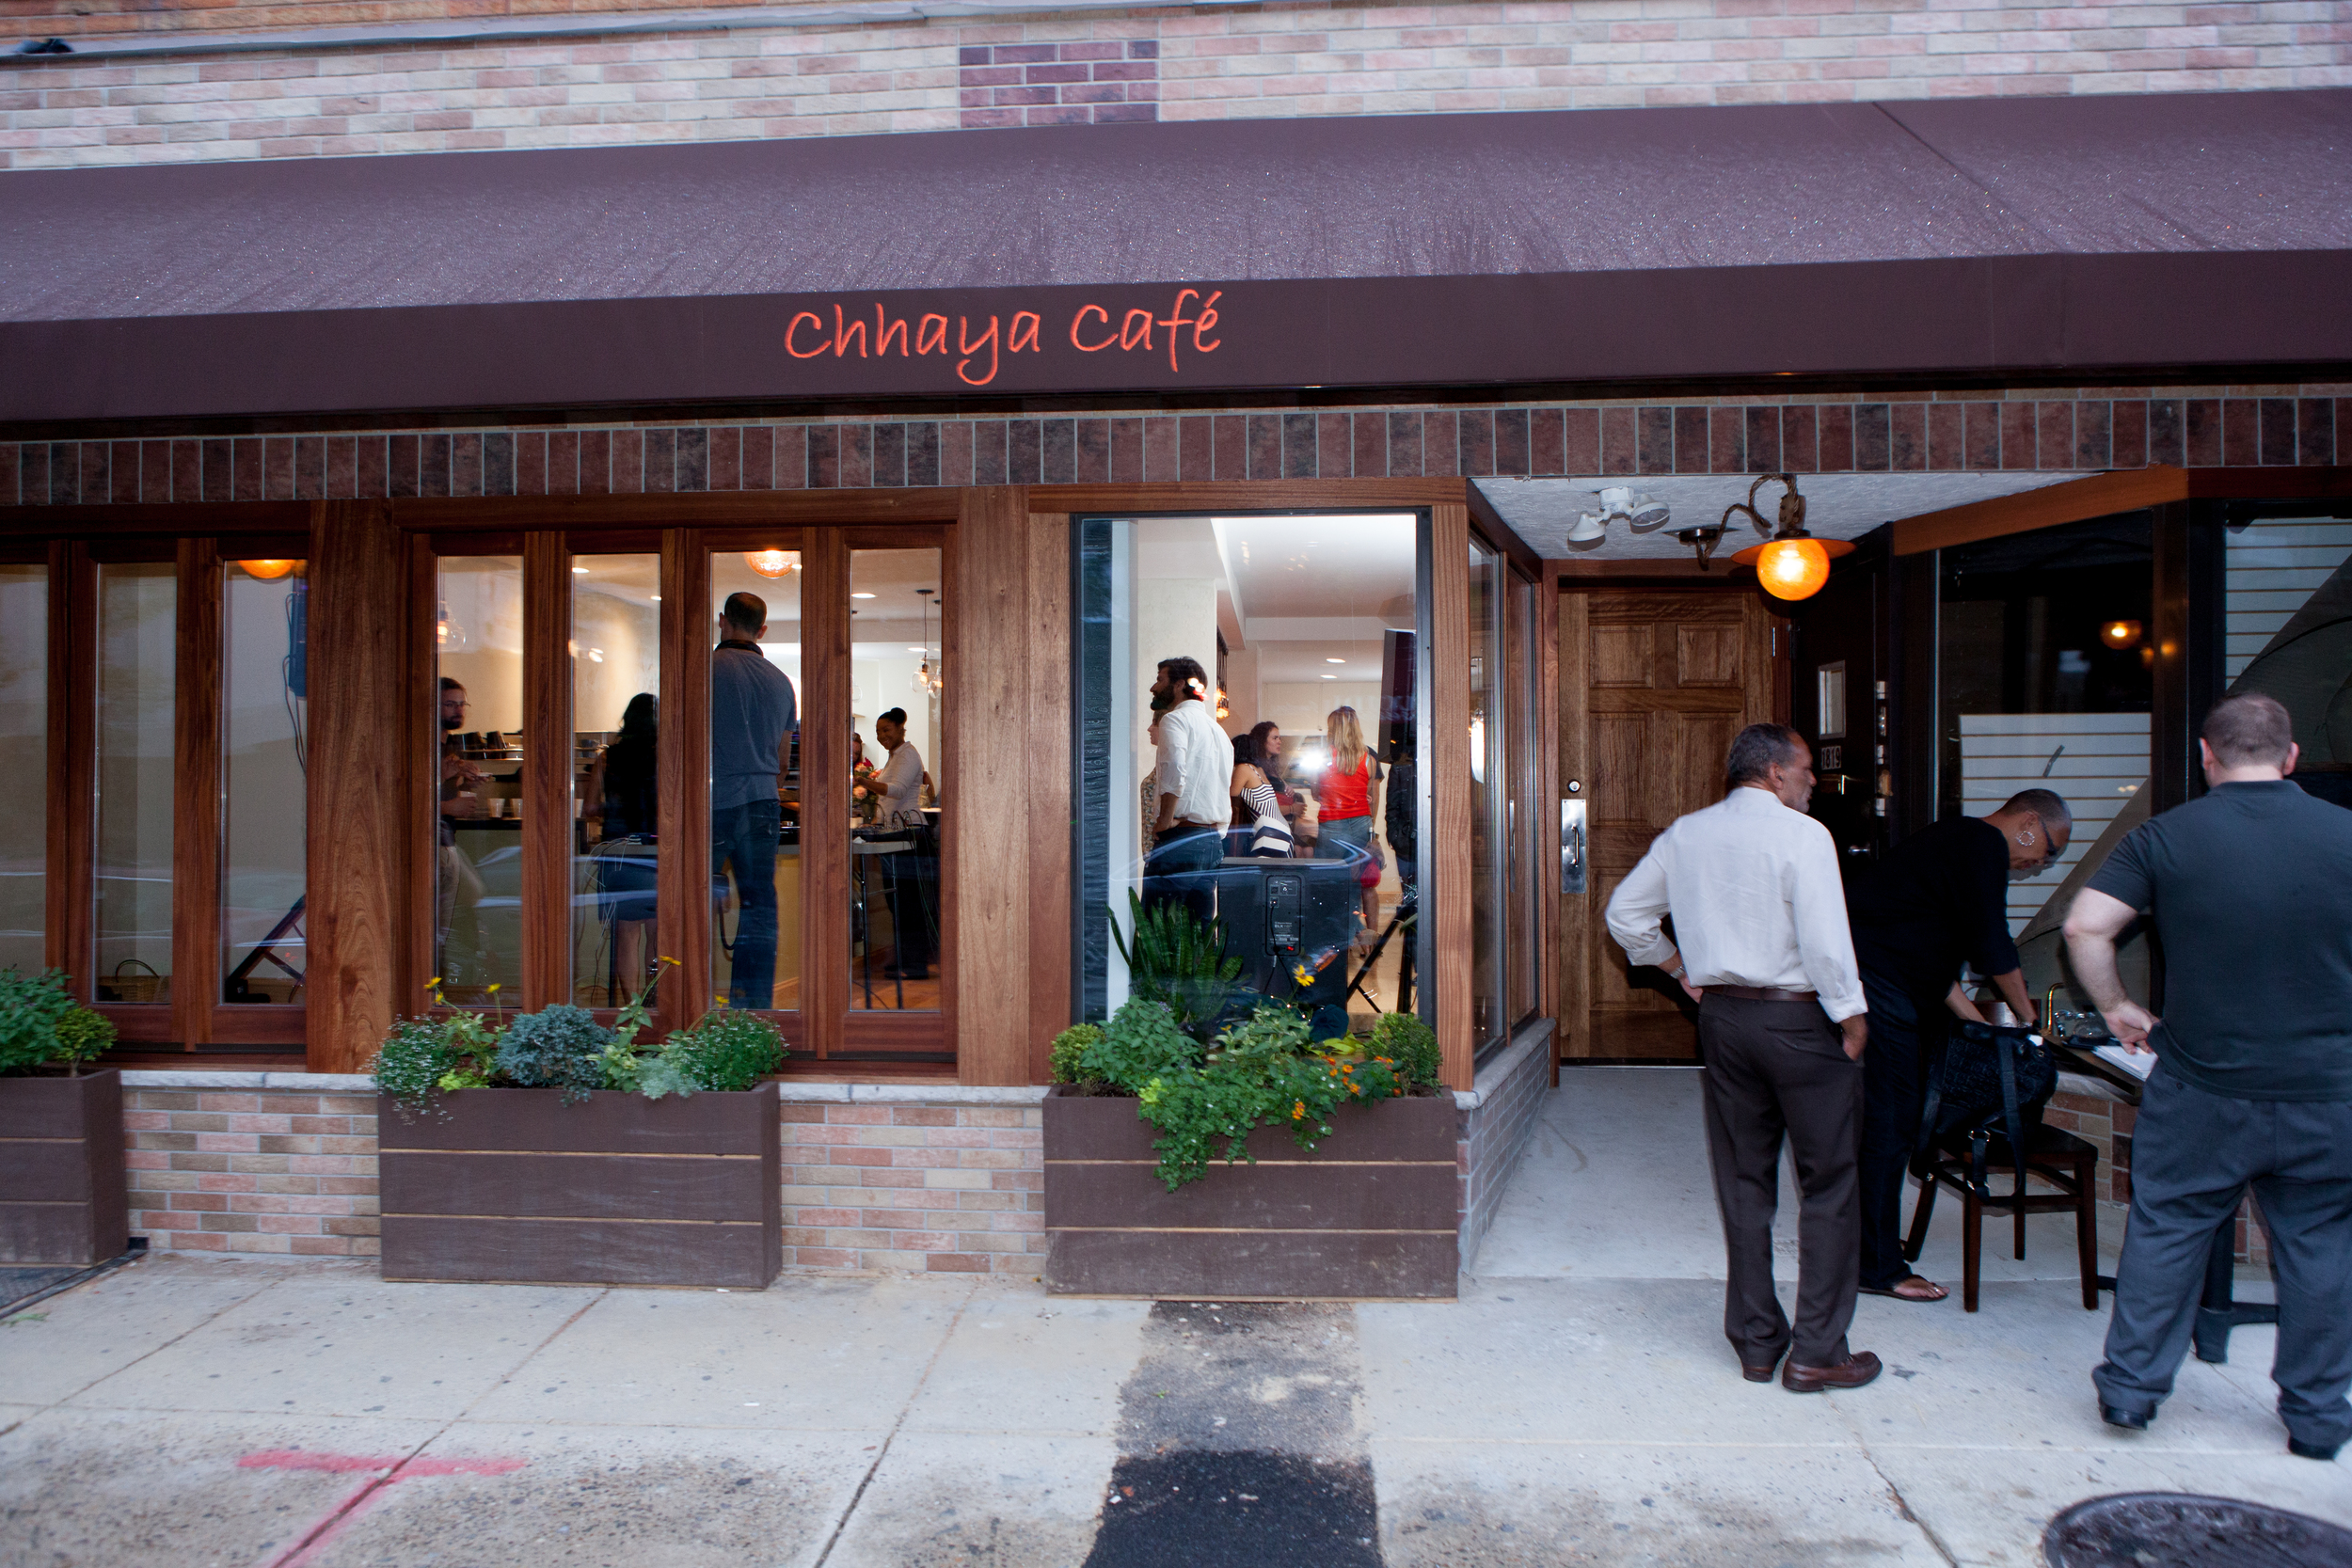 Chhaya, Cafe, East Passyunk, Brunch, Grand Opening, 17